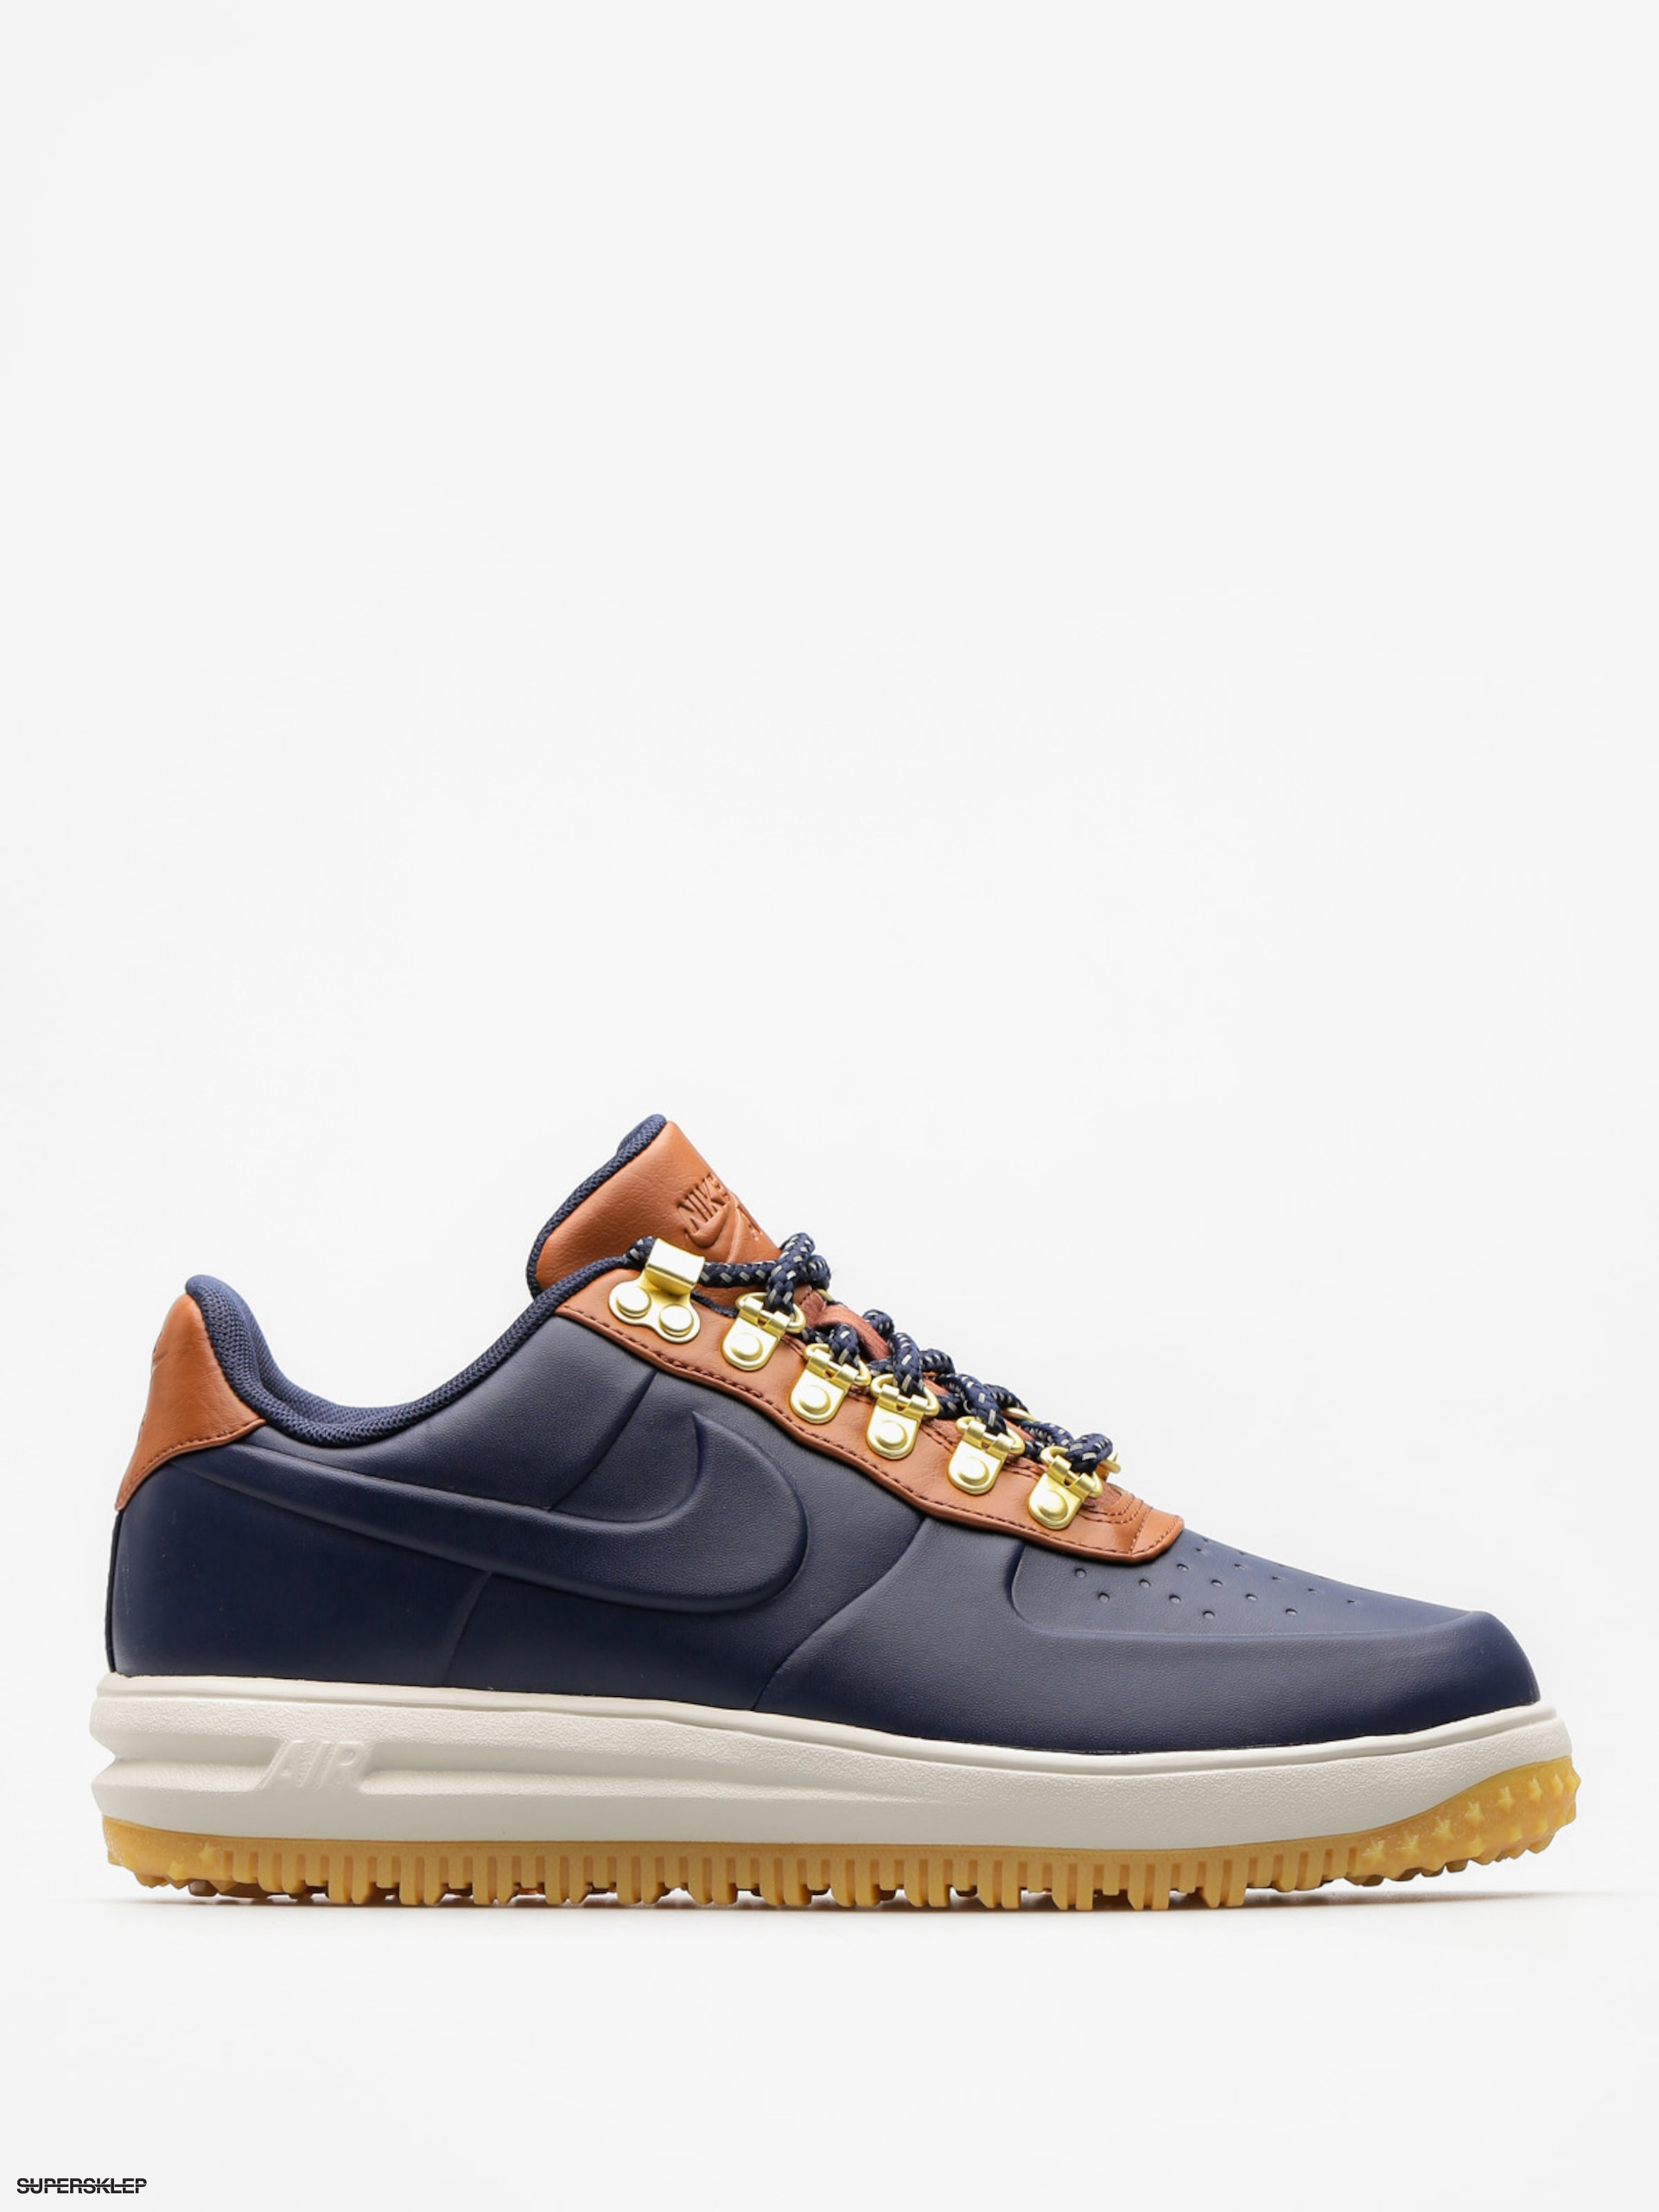 Buty Nike Lunar Force 1 Low Duckboot (obsidian/obsidian saddle brown)